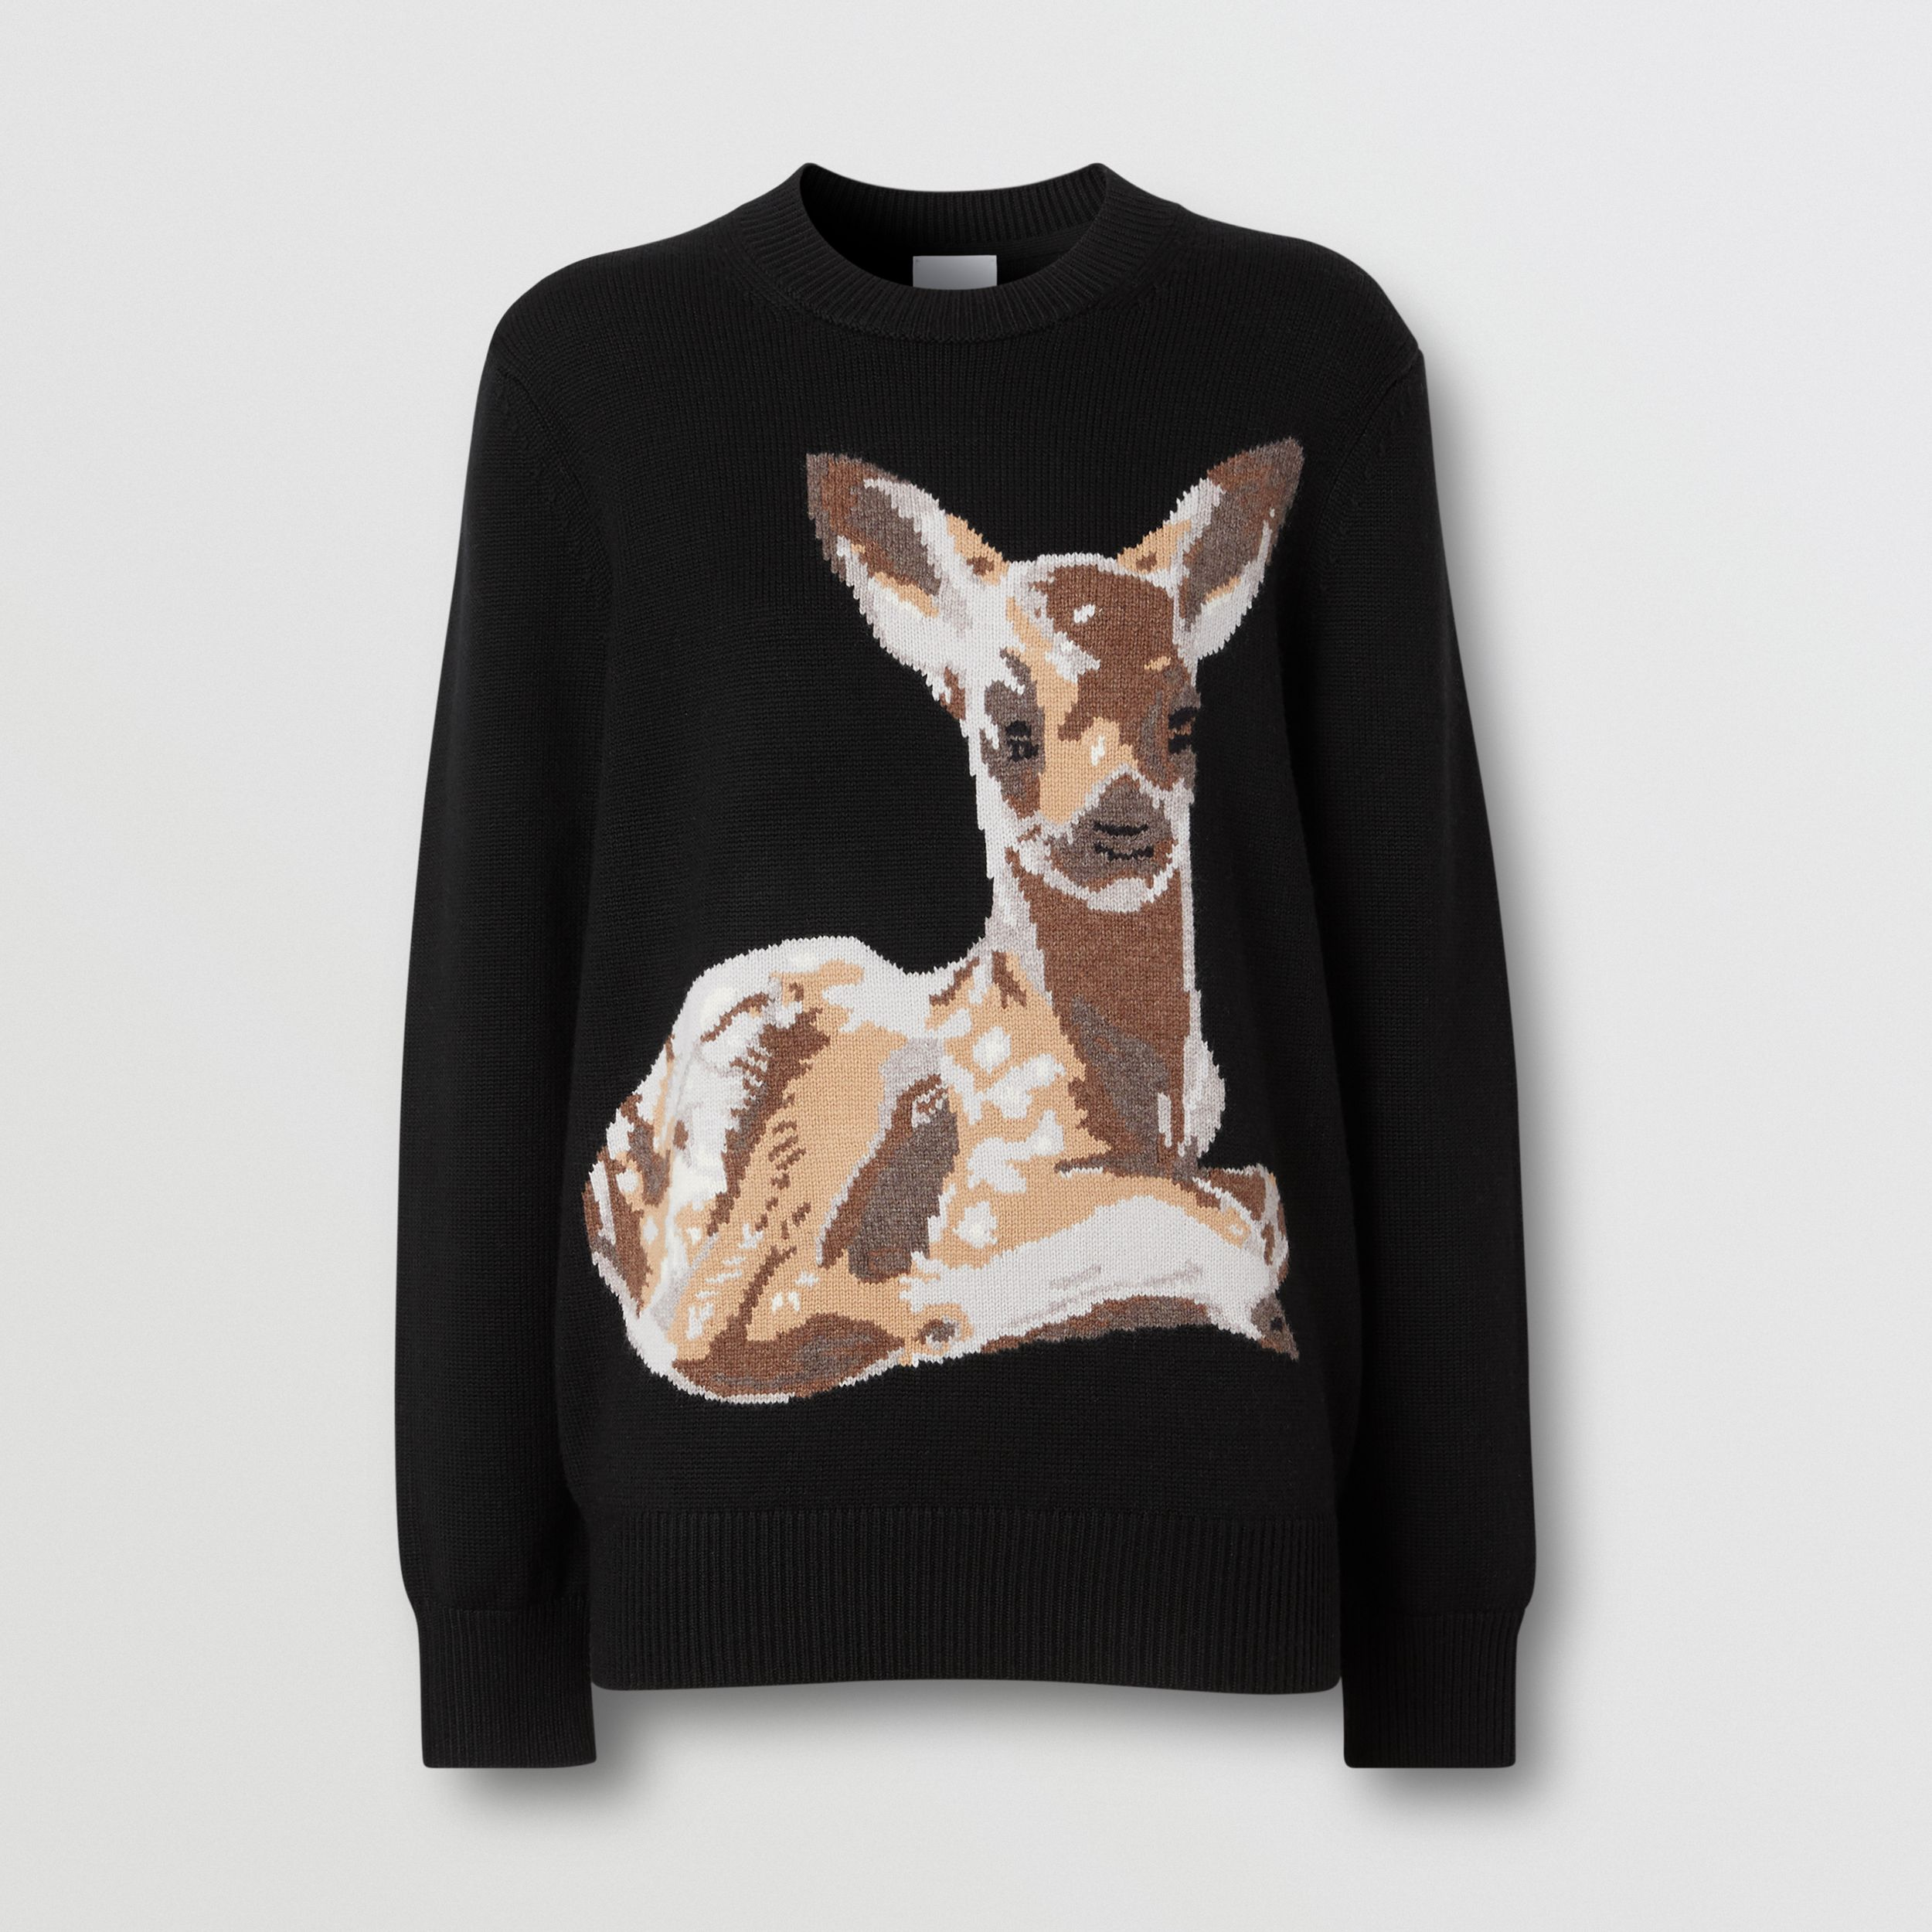 Deer Intarsia Wool Sweater in Black | Burberry - 4